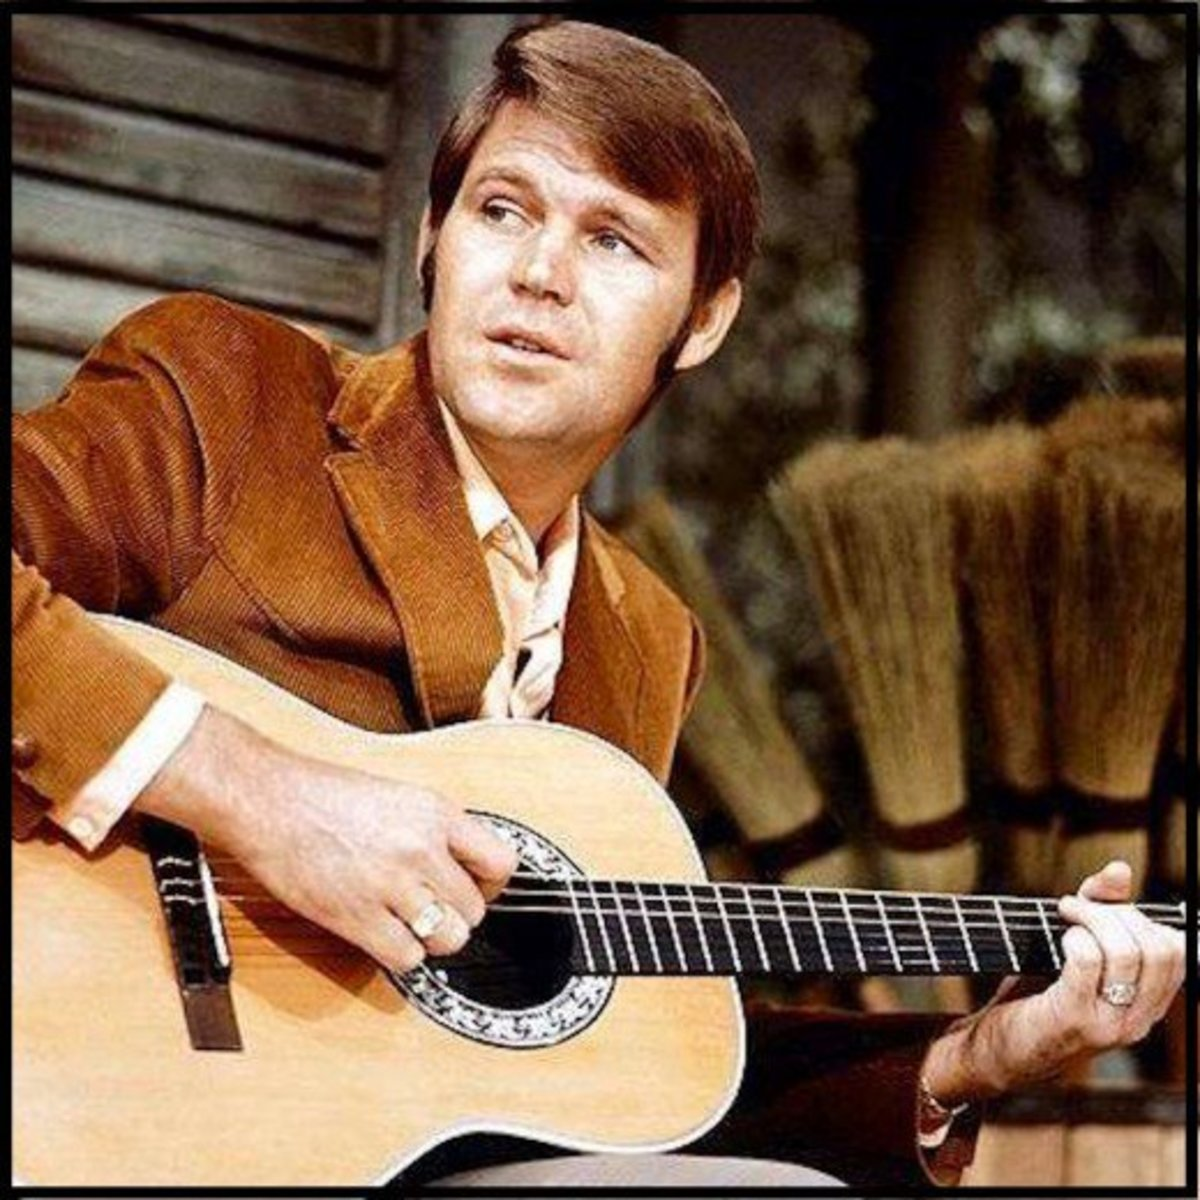 """In 1967, Glen Campbell recorded one of his most beloved songs, """"Gentle on My Mind"""""""